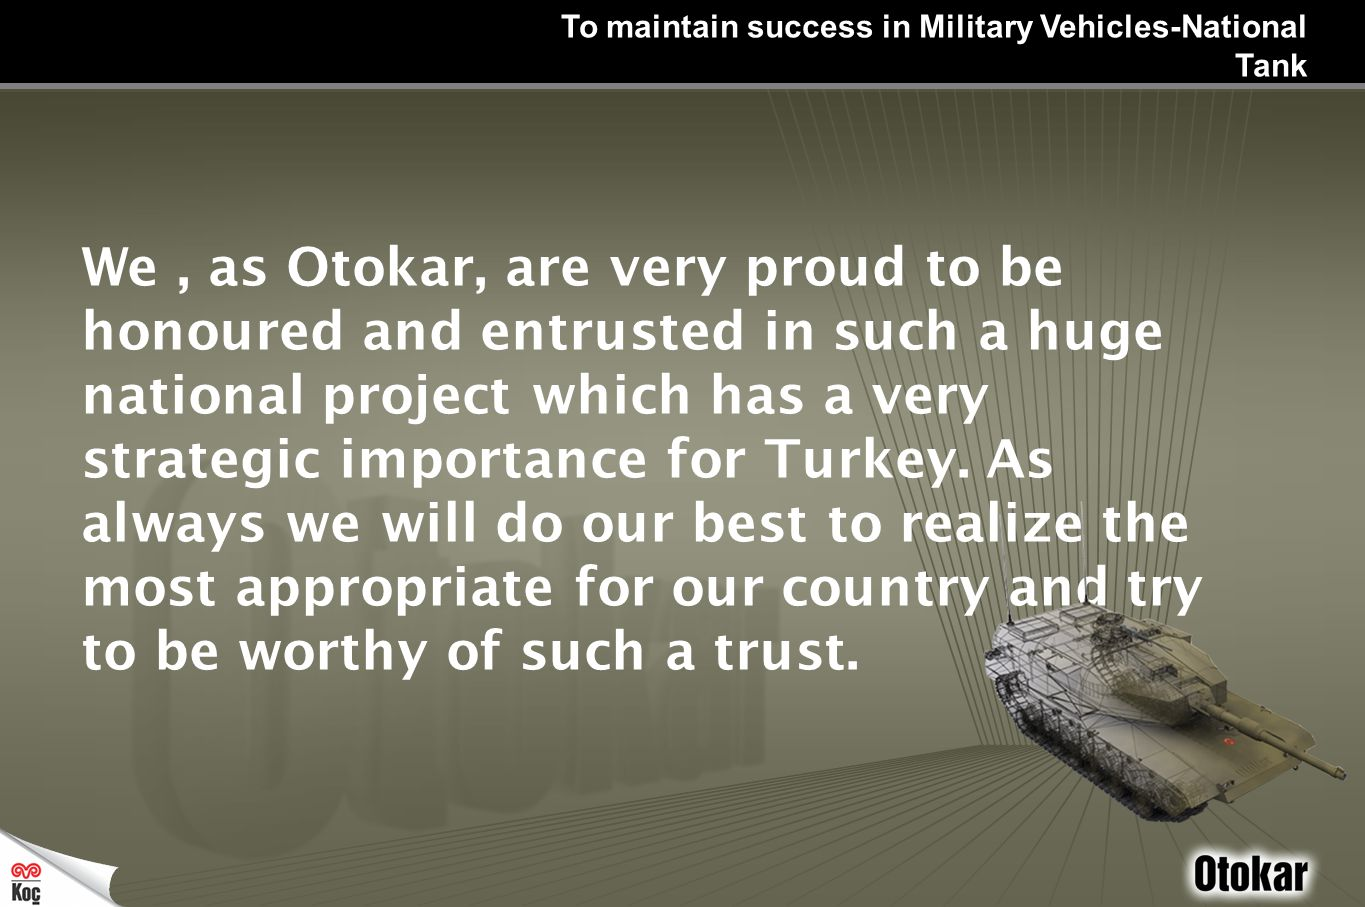 To maintain success in Military Vehicles-National Tank We, as Otokar, are very proud to be honoured and entrusted in such a huge national project which has a very strategic importance for Turkey.